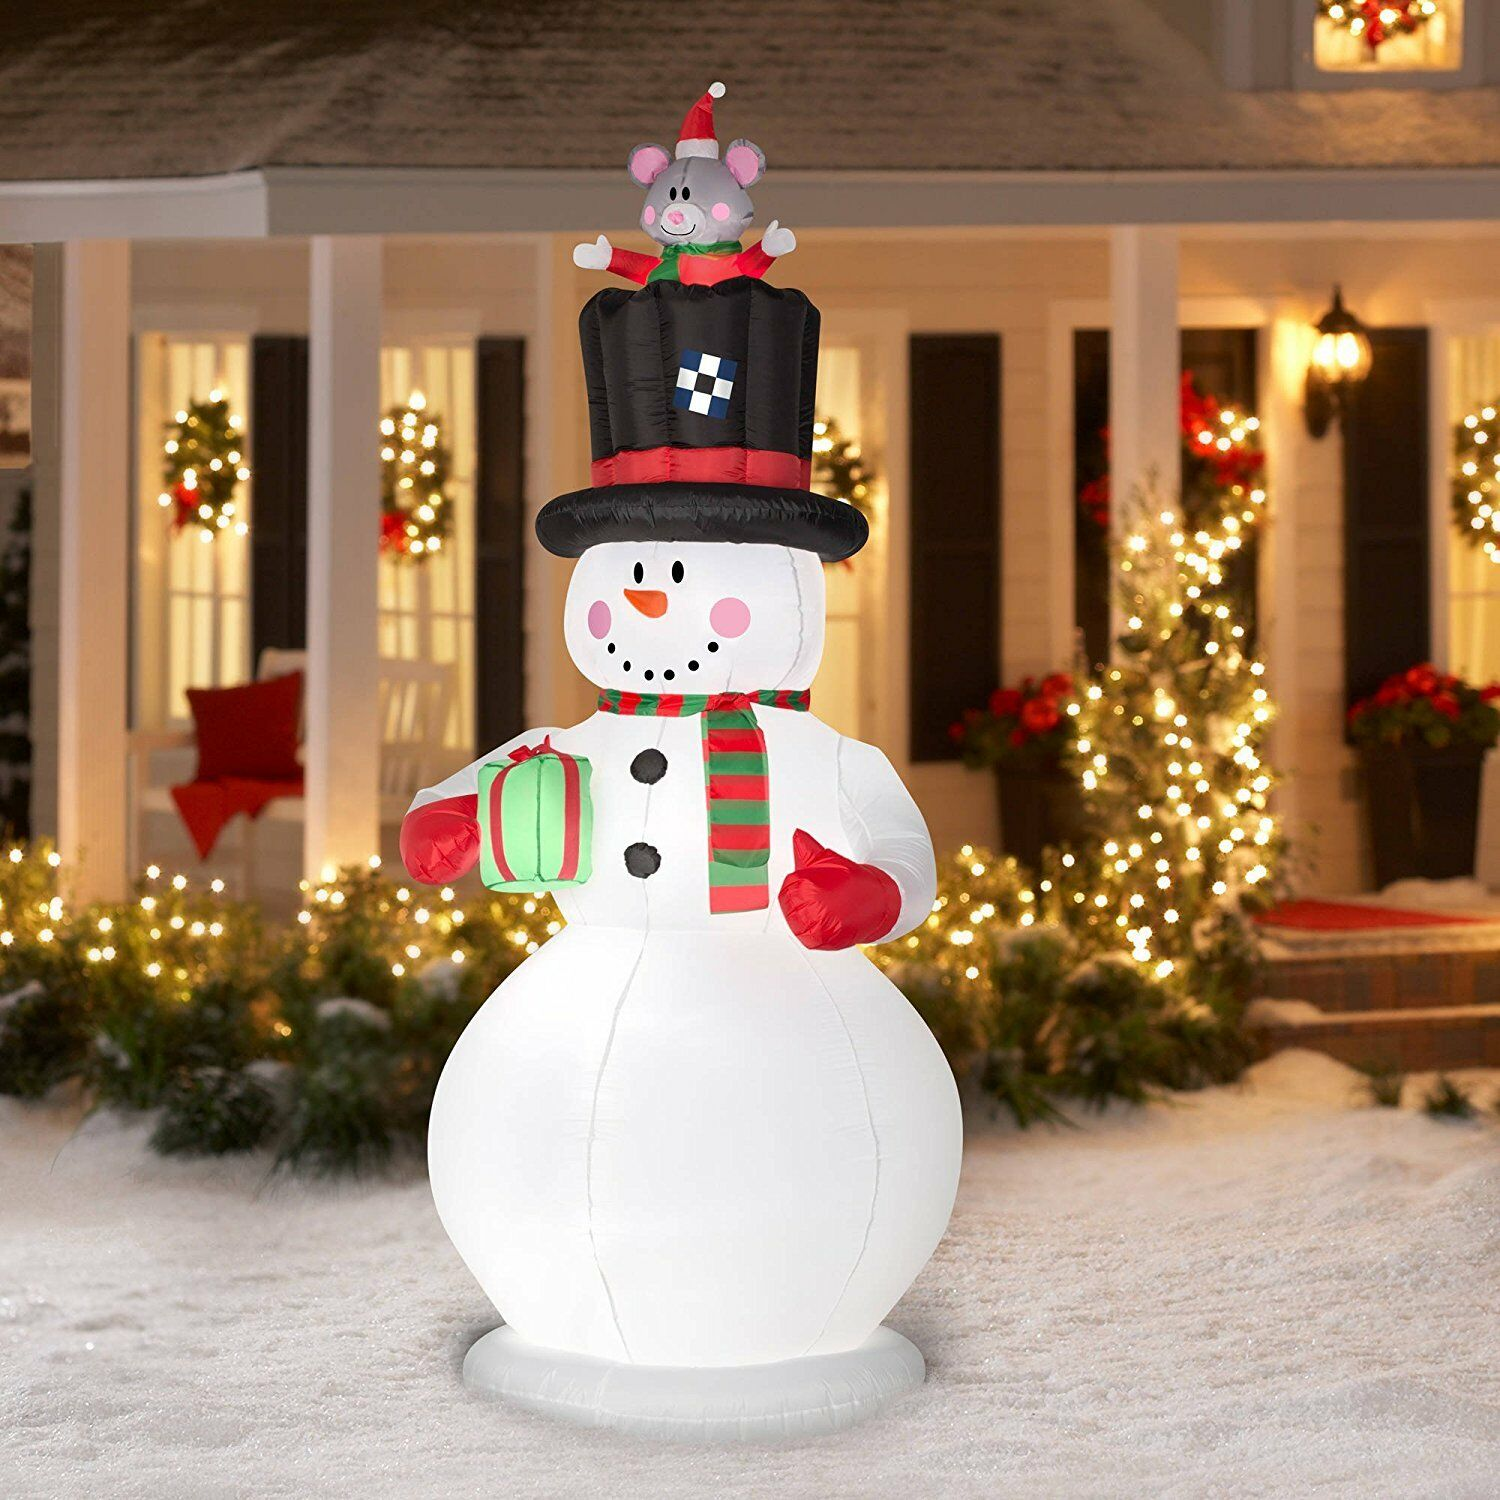 b decor head christmas items snowman decorations tree decorated topper sbo ornament shelley set